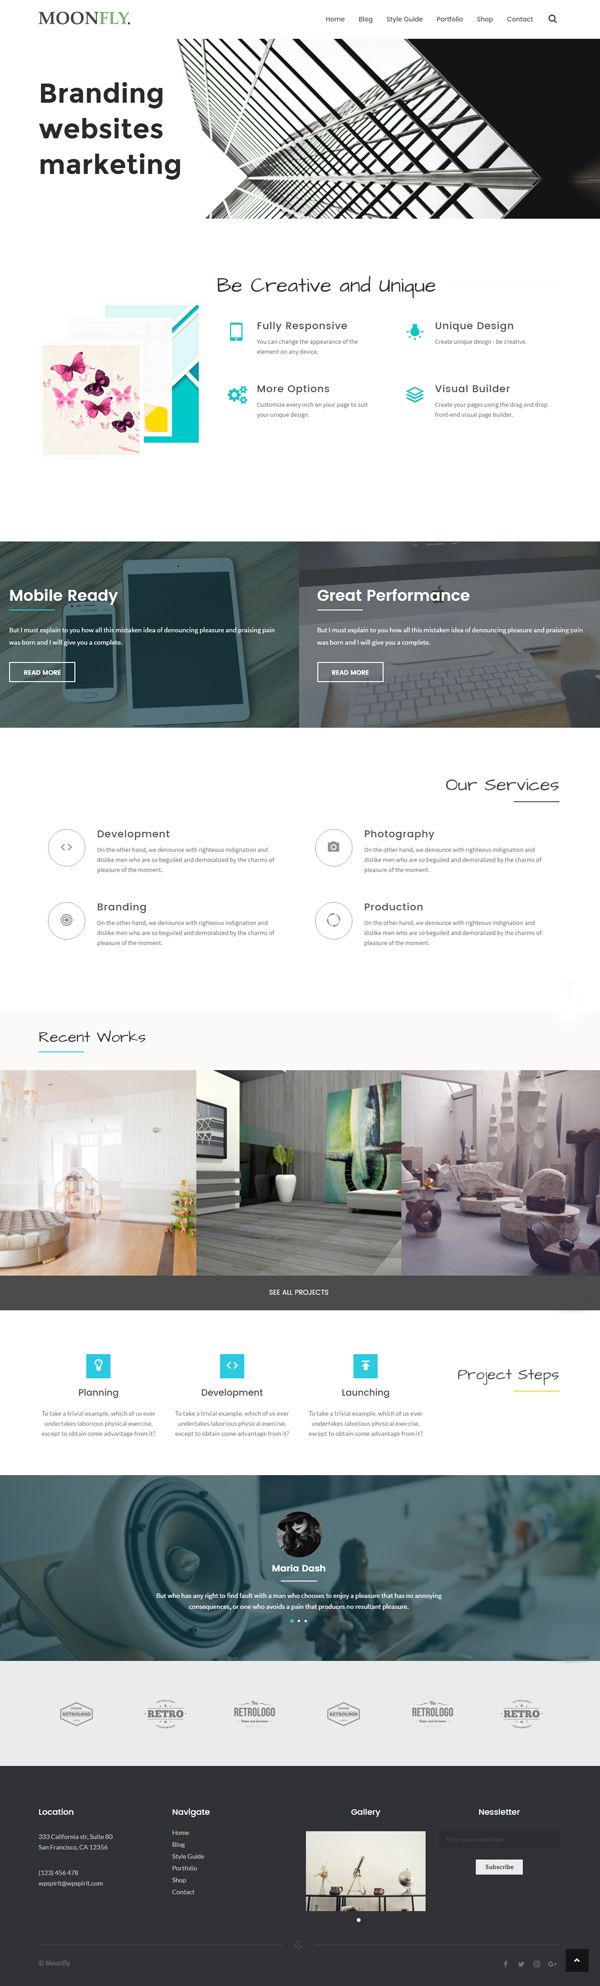 Moonfly - Multipurpose WordPress Theme